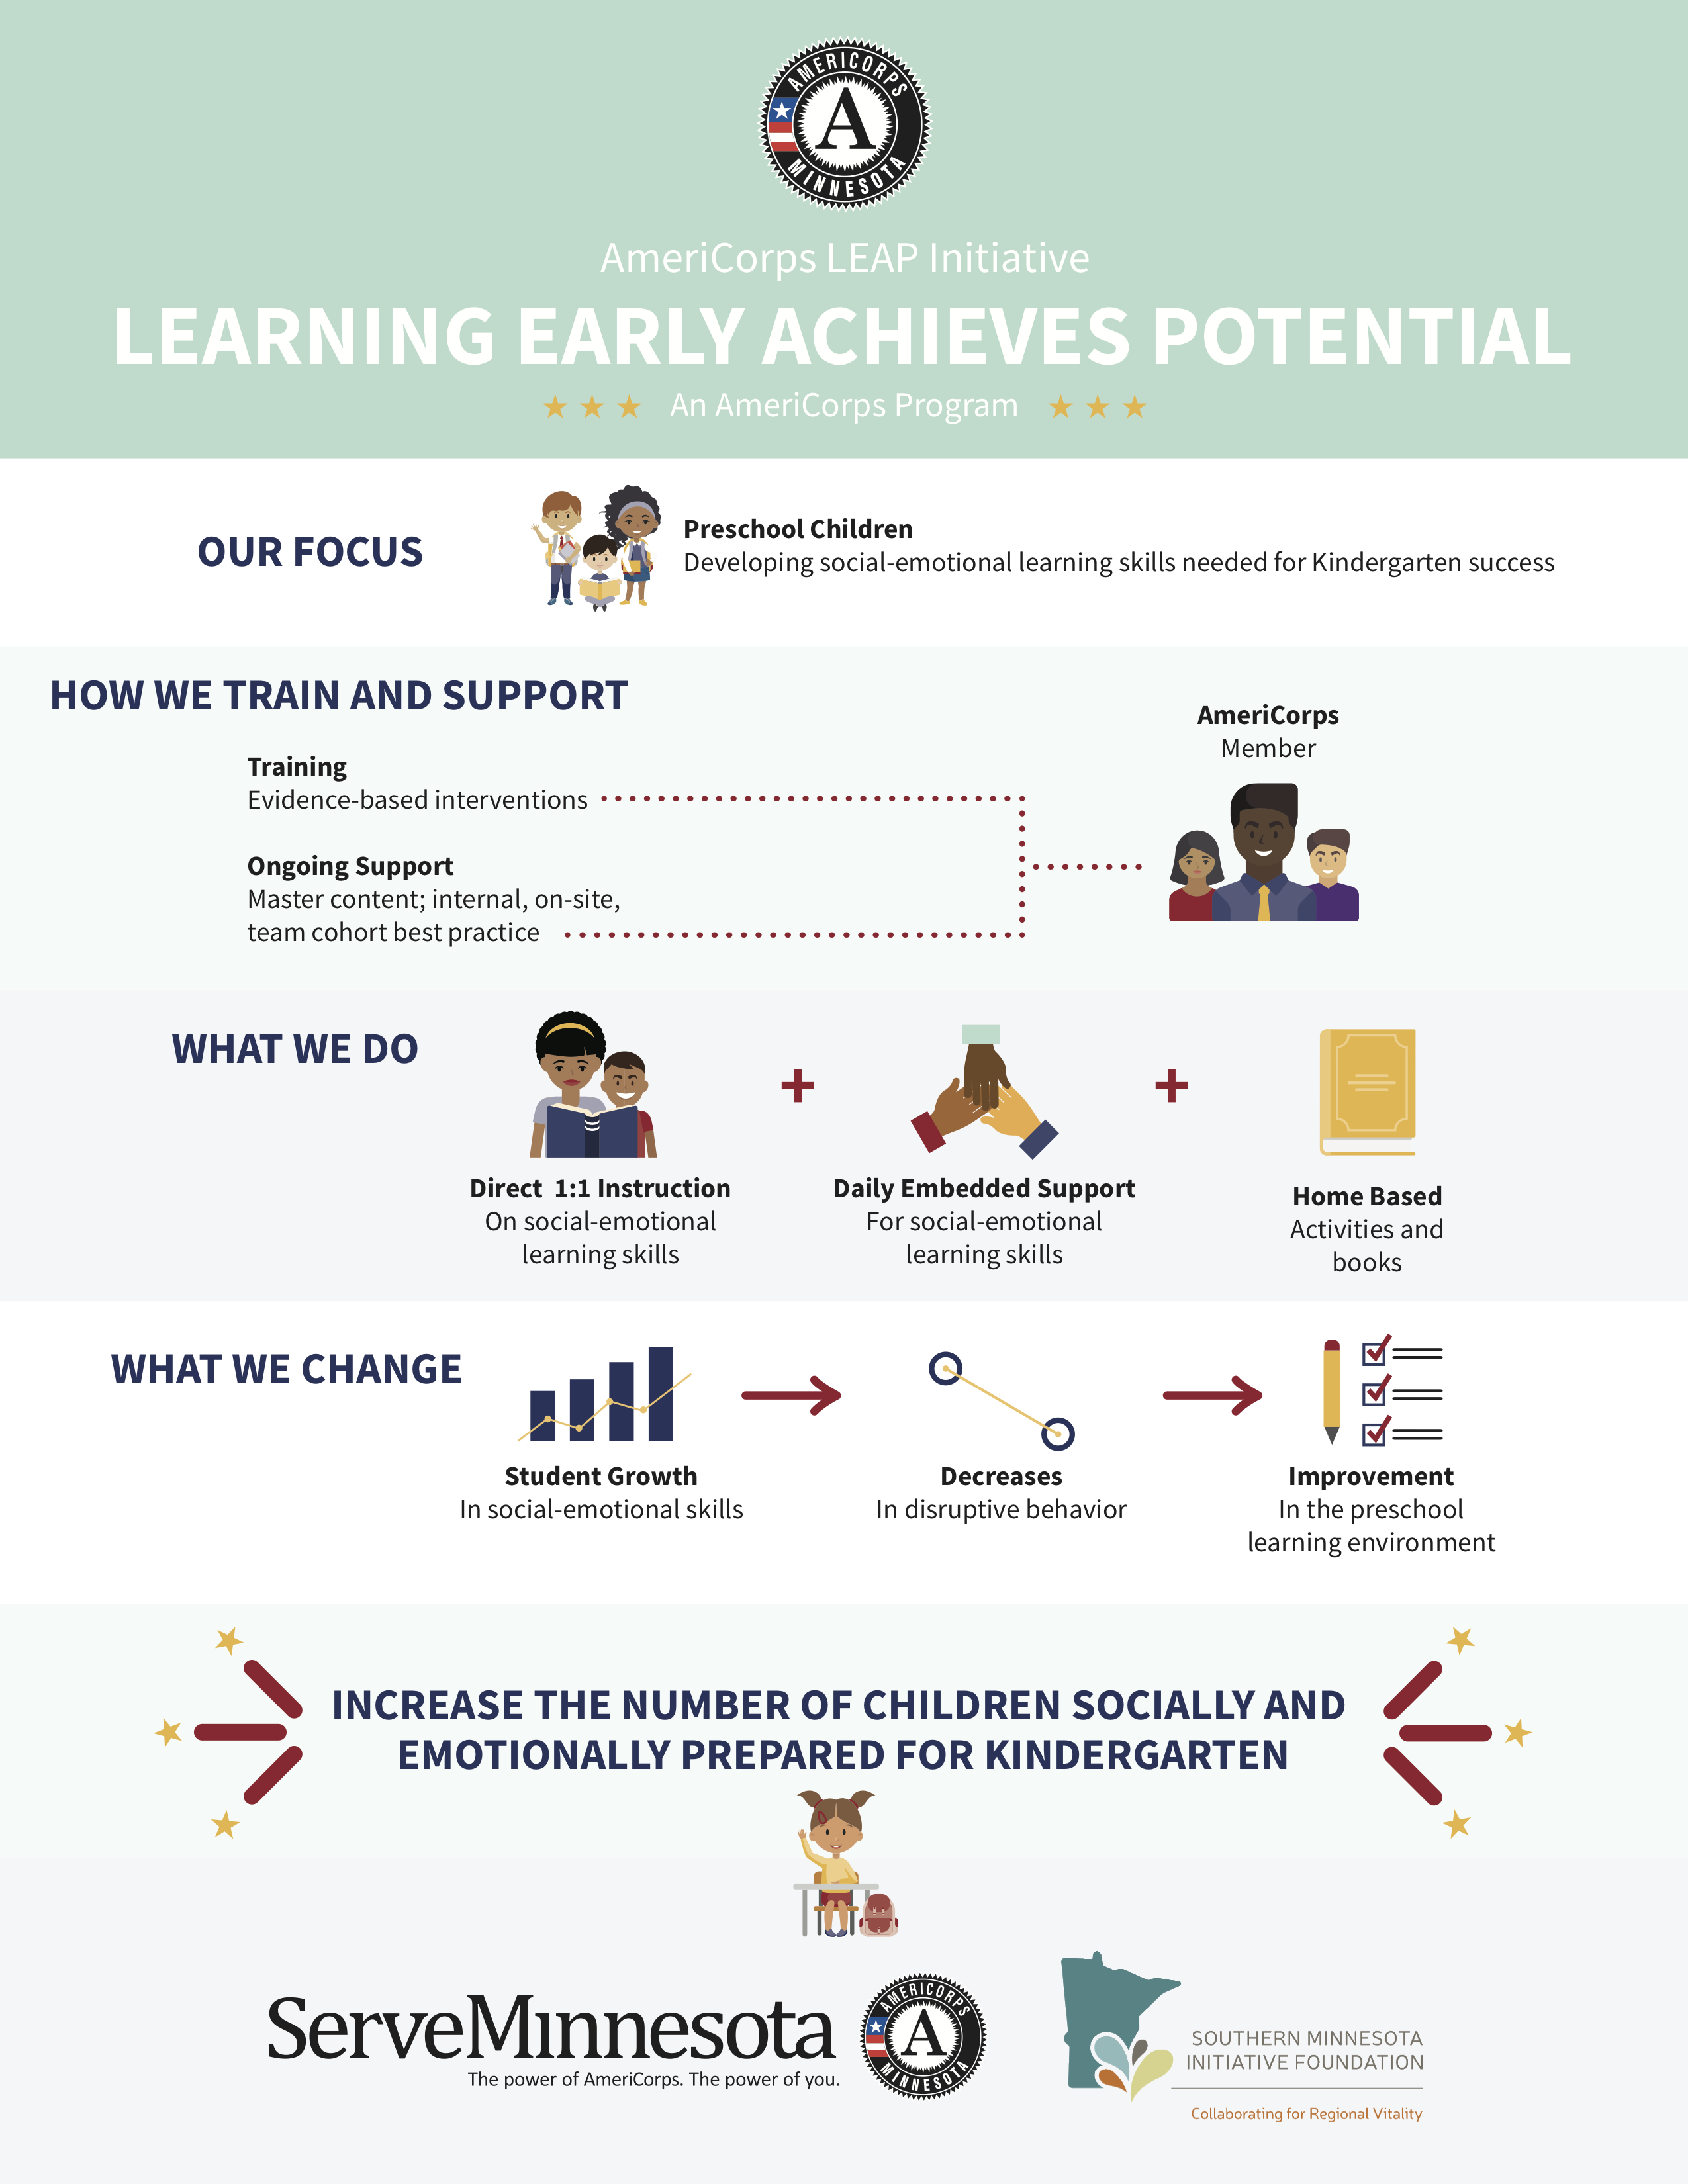 Information graphic about AmeriCorps LEAP Initiative